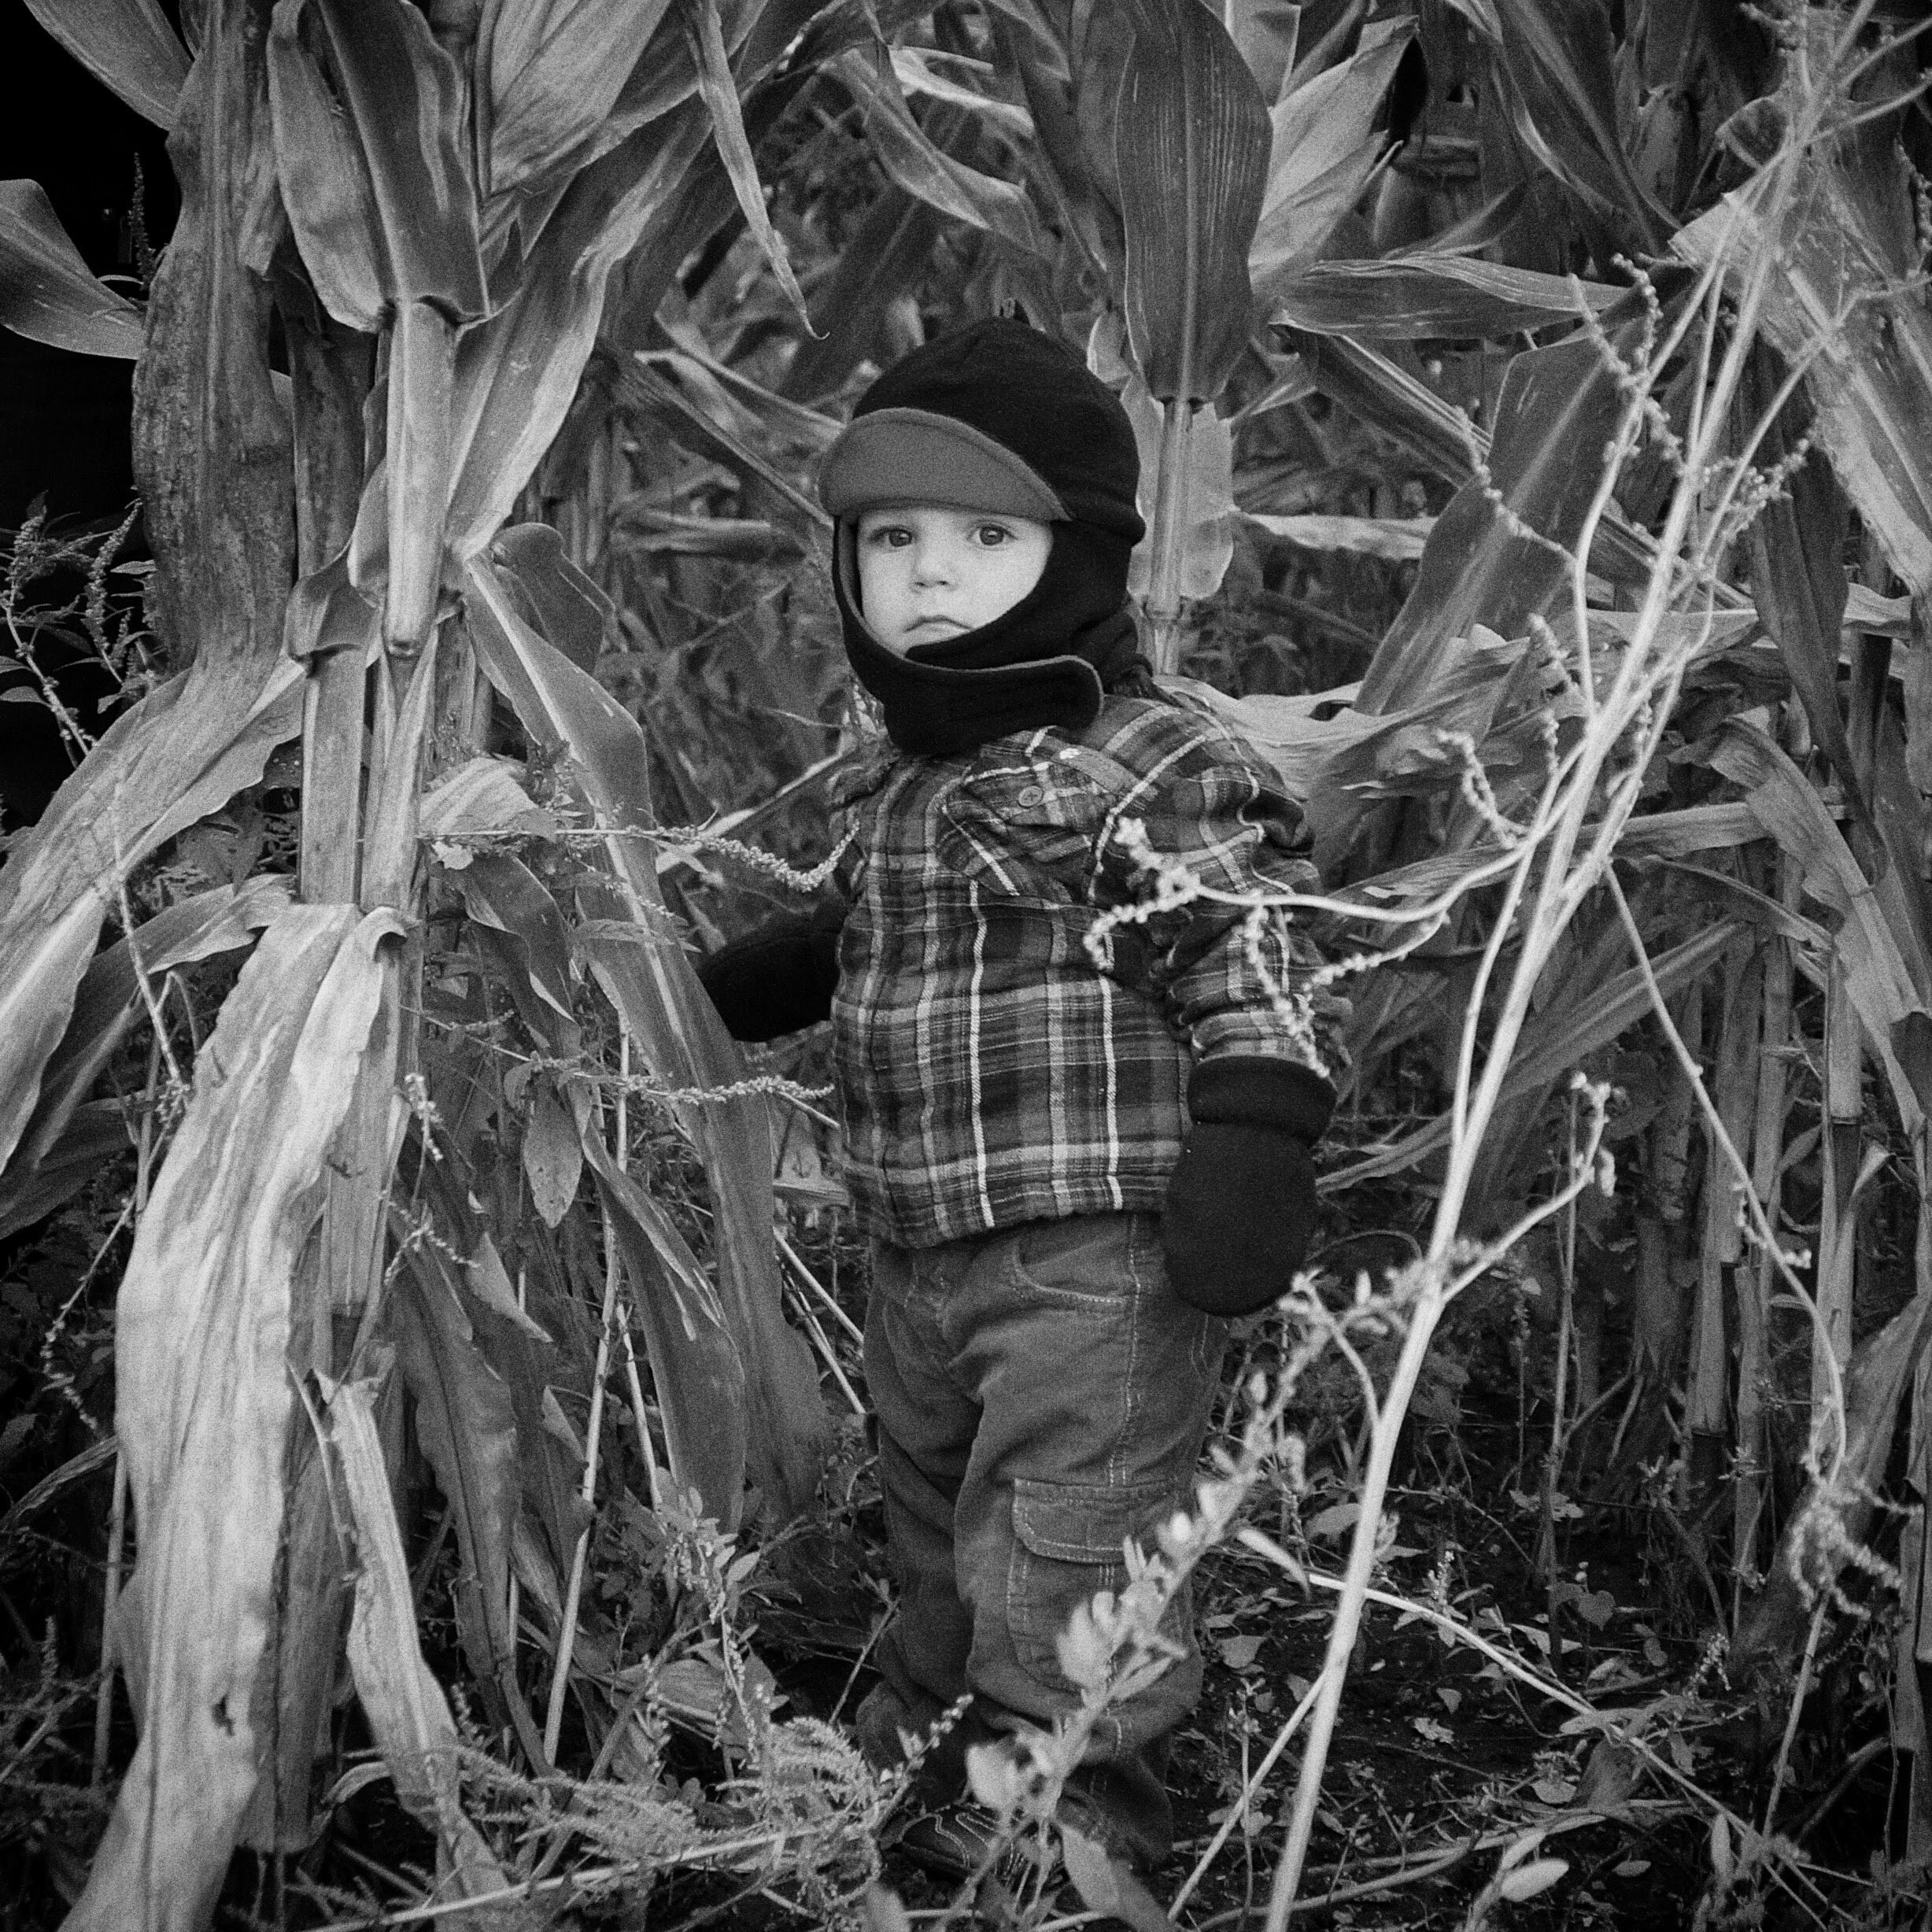 Ryker in the corn at the pumpkin patch